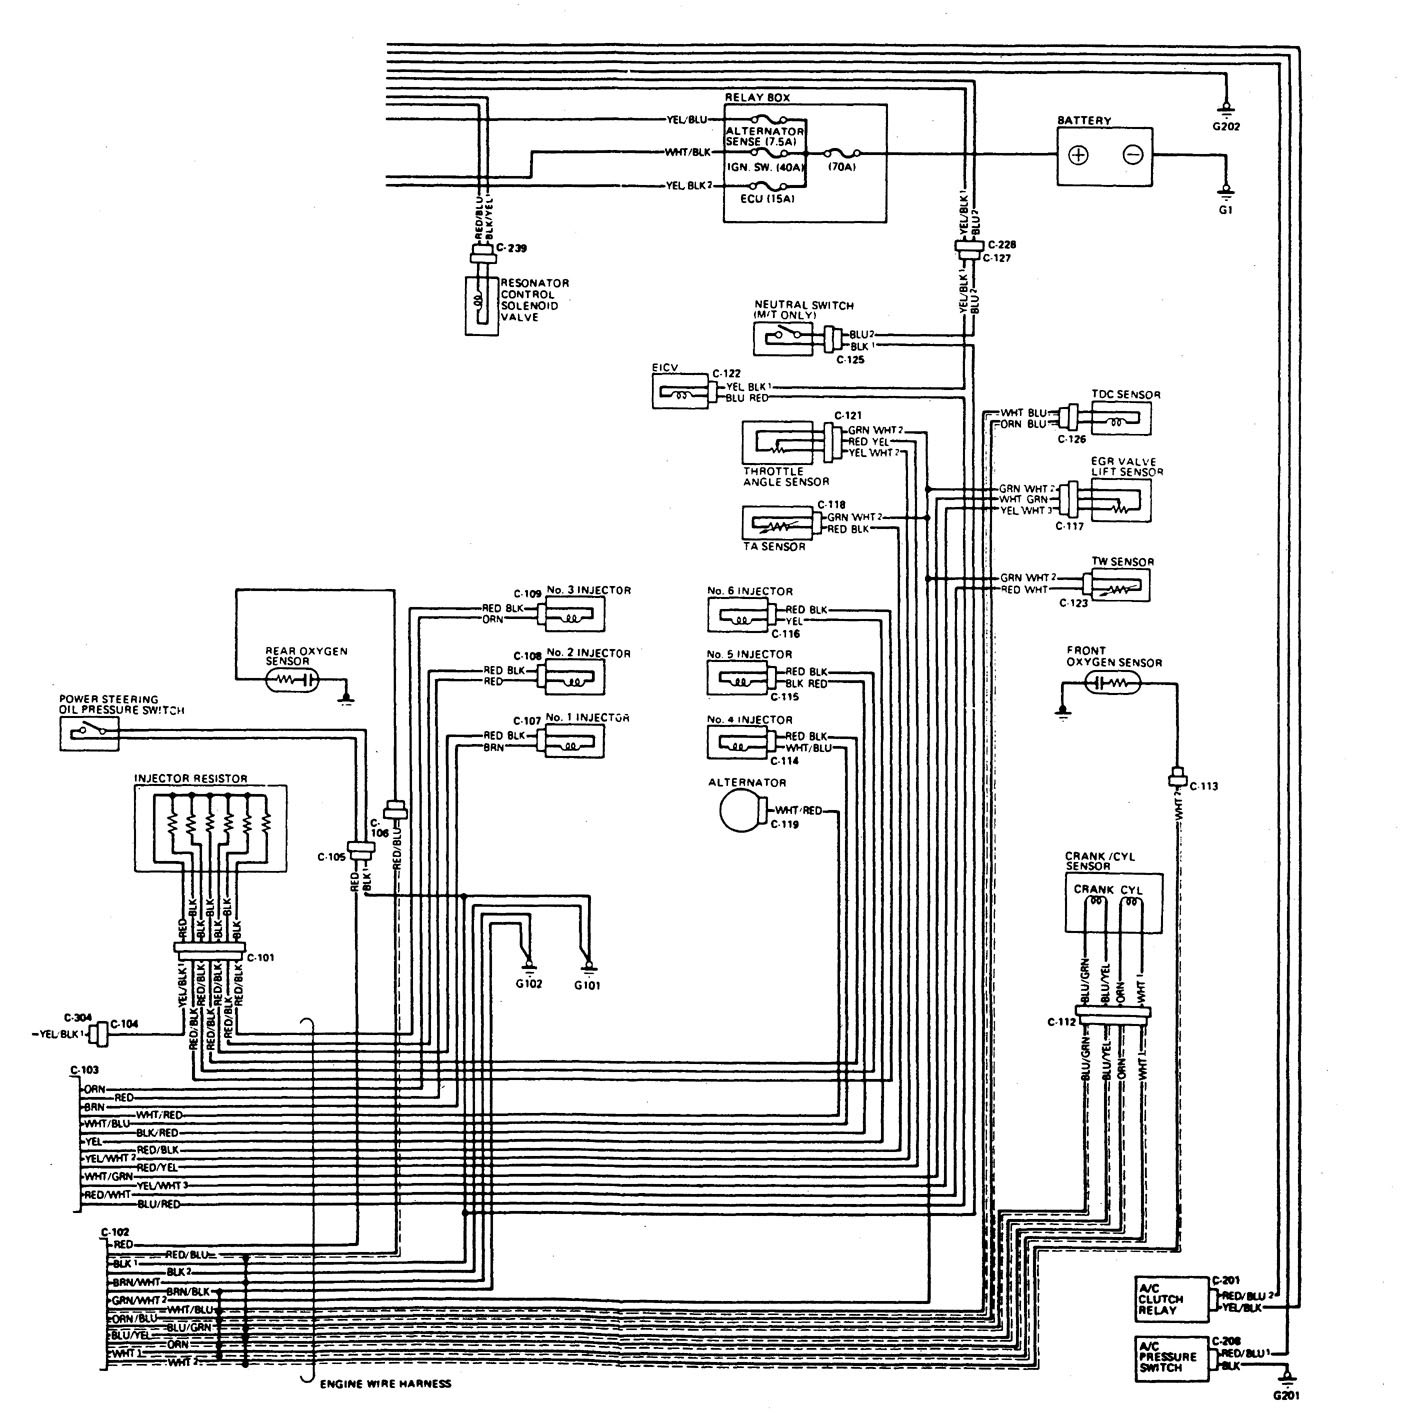 91 ford tempo fuse panel diagram  ford  auto fuse box diagram